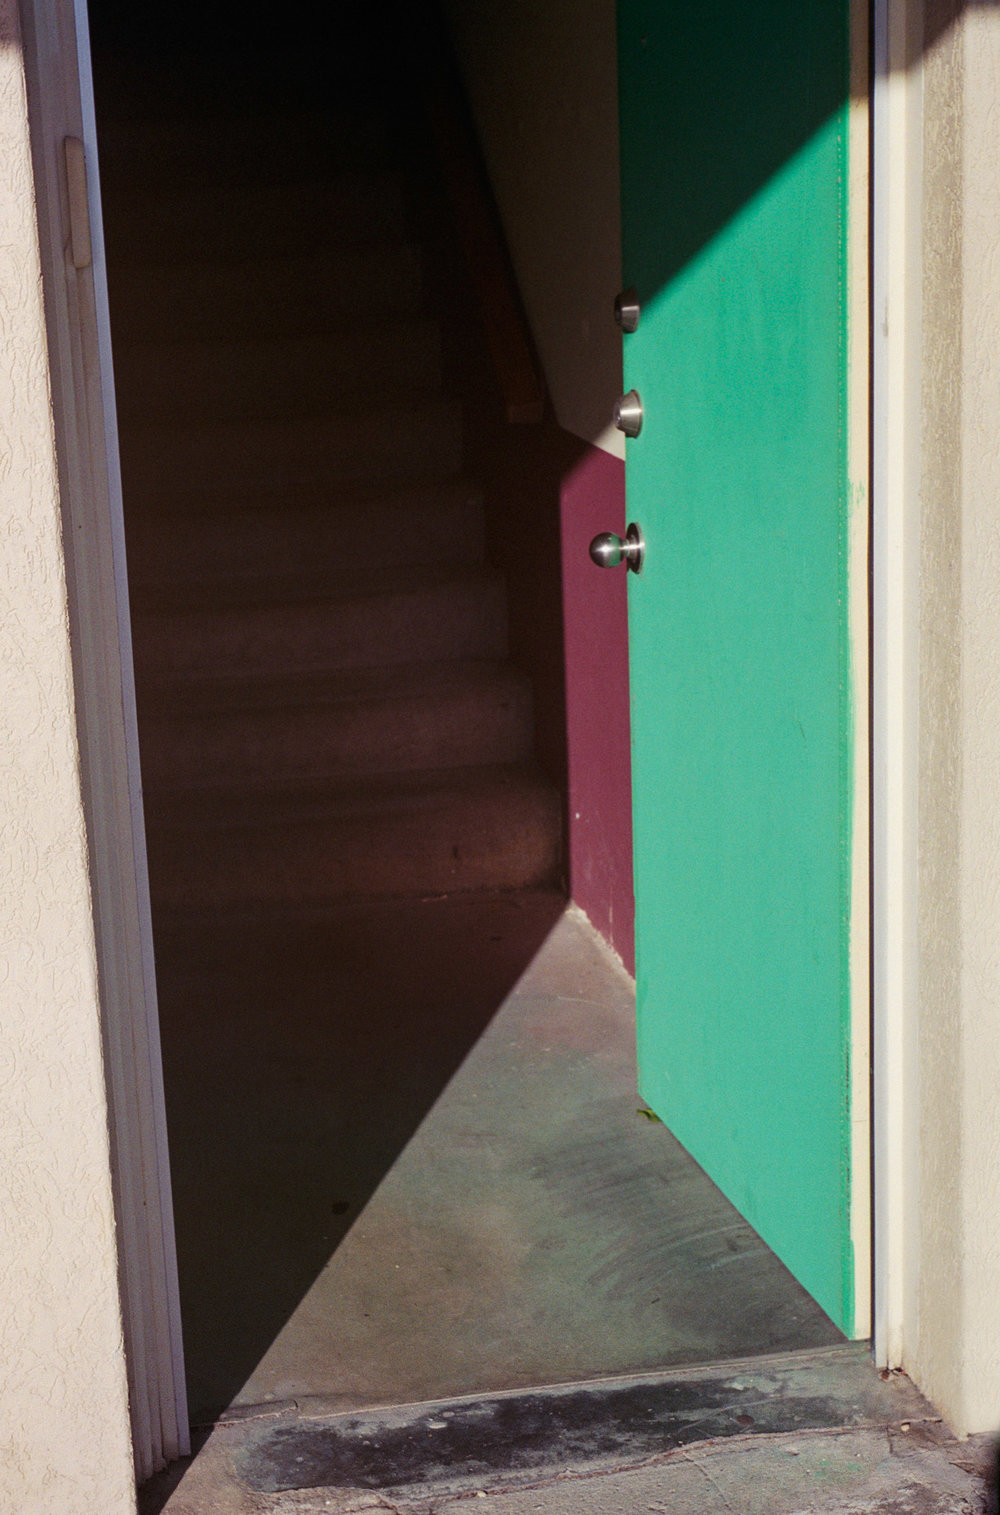 Southport-Stairway-green-door-.jpg